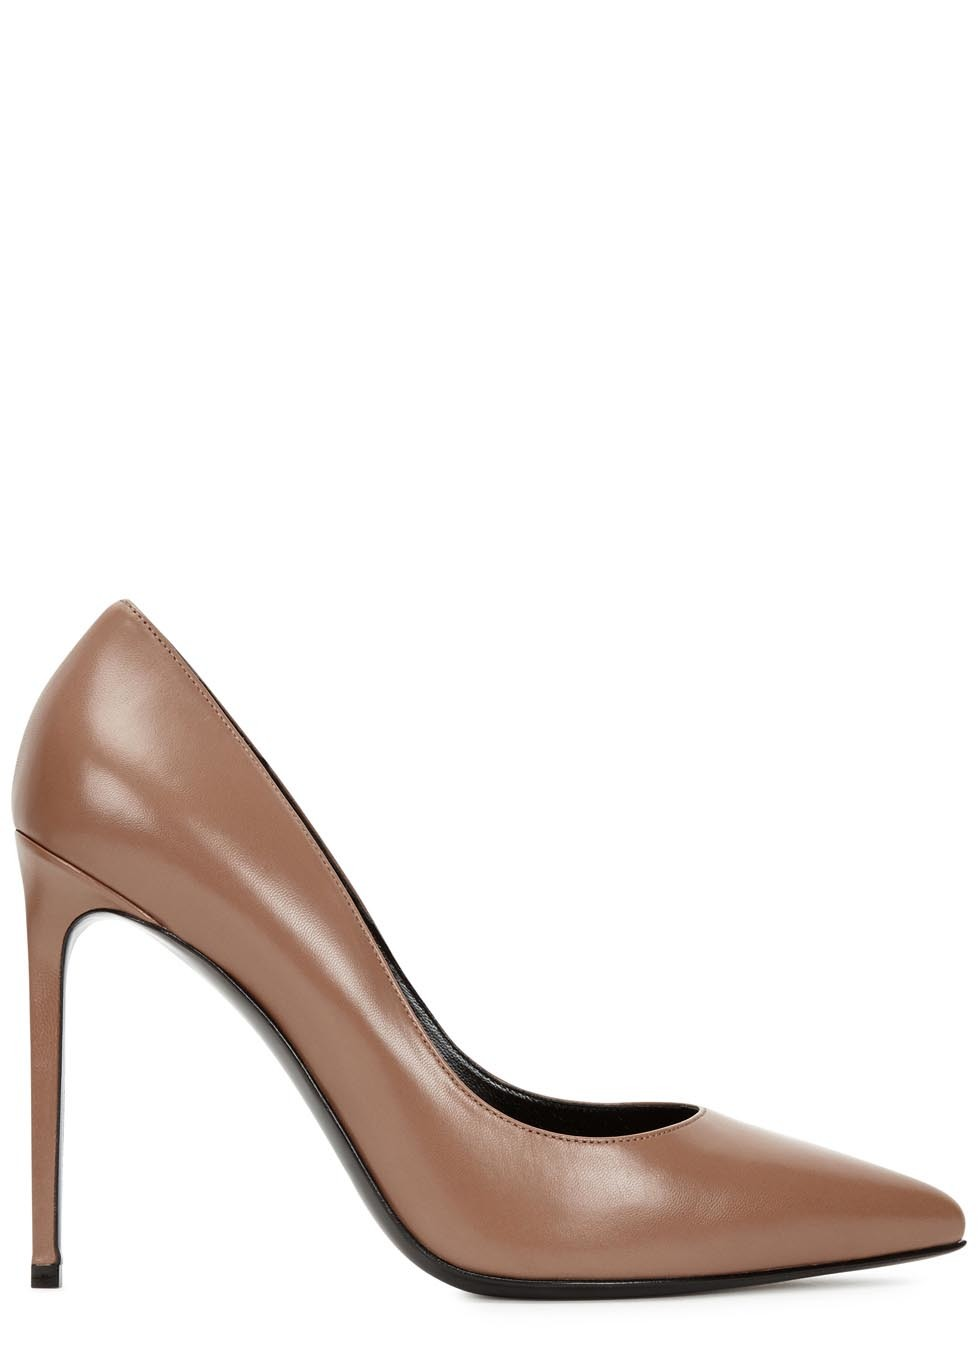 Taupe Glossed Leather Pumps - predominant colour: tan; occasions: evening, work; material: suede; heel height: high; heel: stiletto; toe: pointed toe; style: courts; finish: plain; pattern: plain; season: s/s 2016; wardrobe: highlight